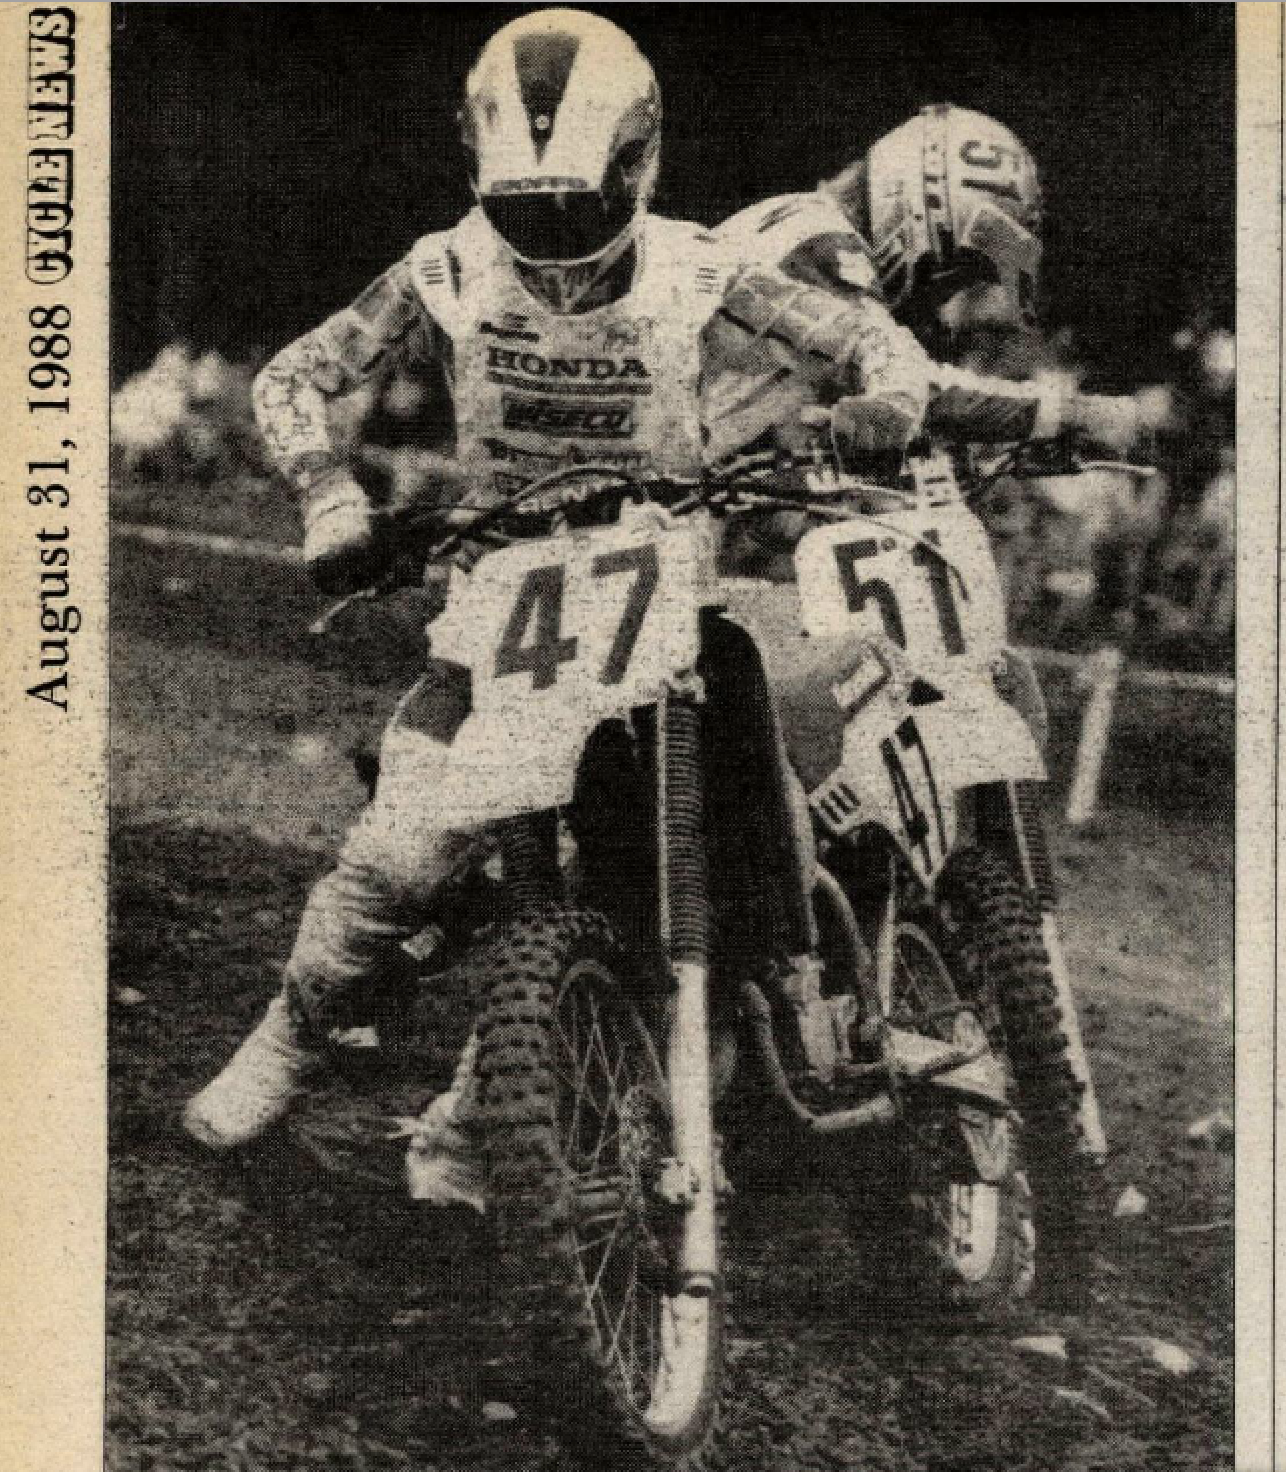 Emig (#47) and Bradshaw (#51) pick themselves up off the dirt at the back of the pack.